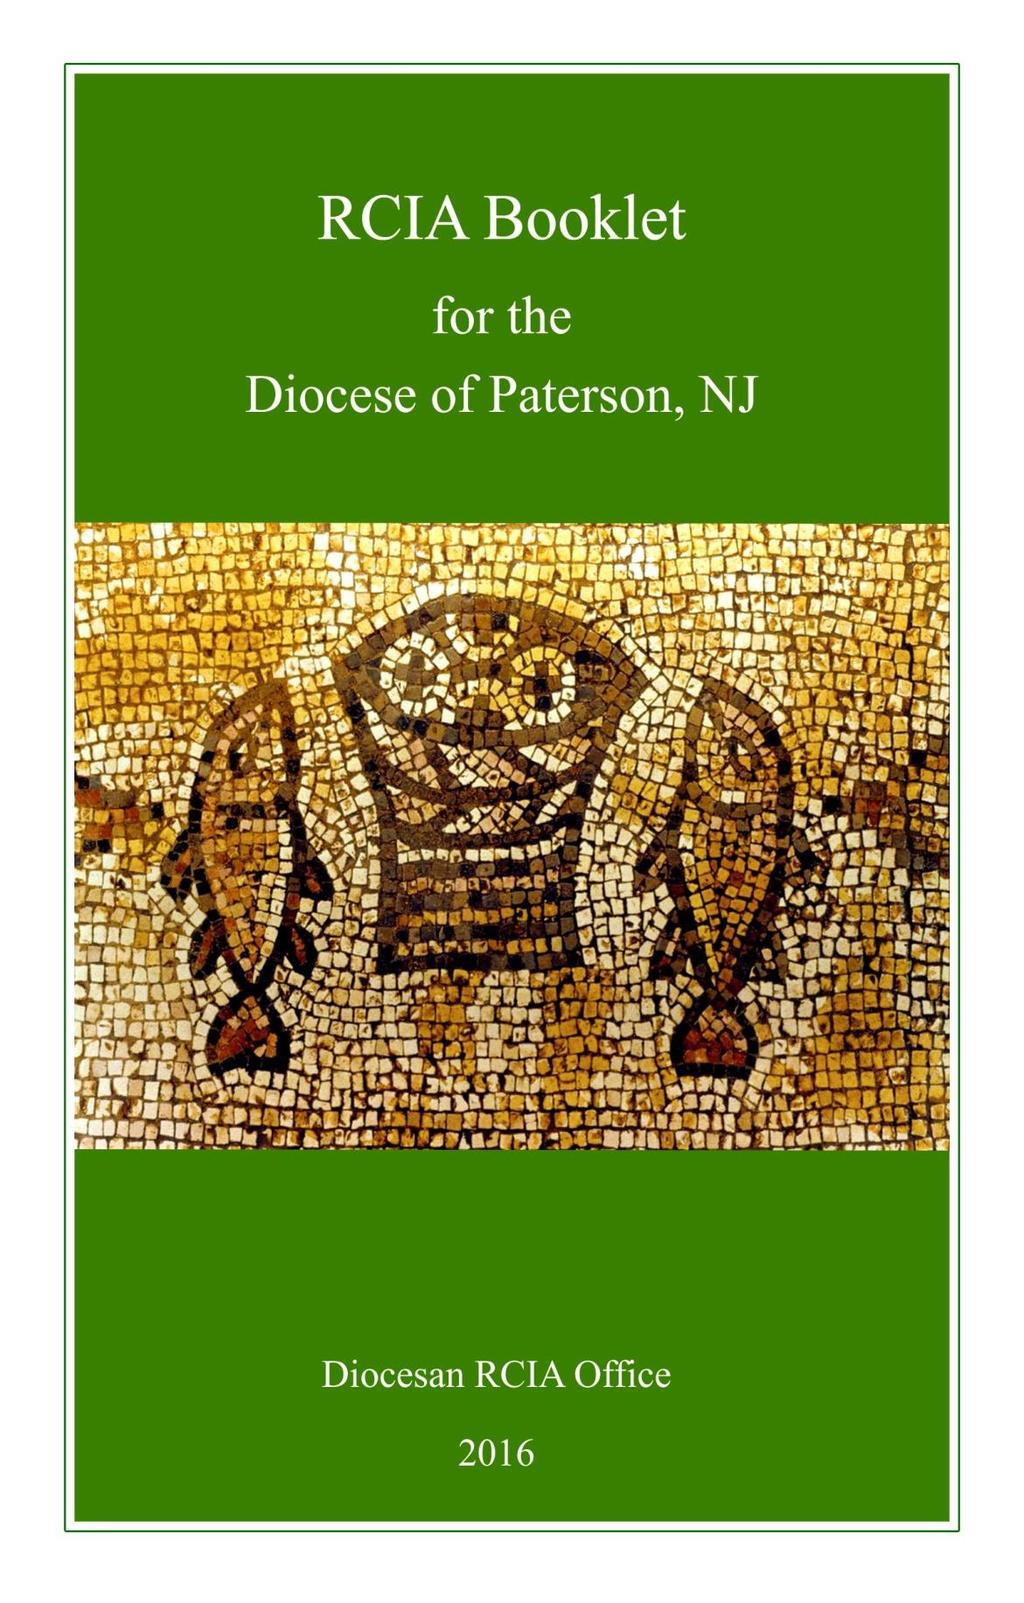 This handbook was designed for the use of the RCIA coordinators in the Diocese of Paterson.